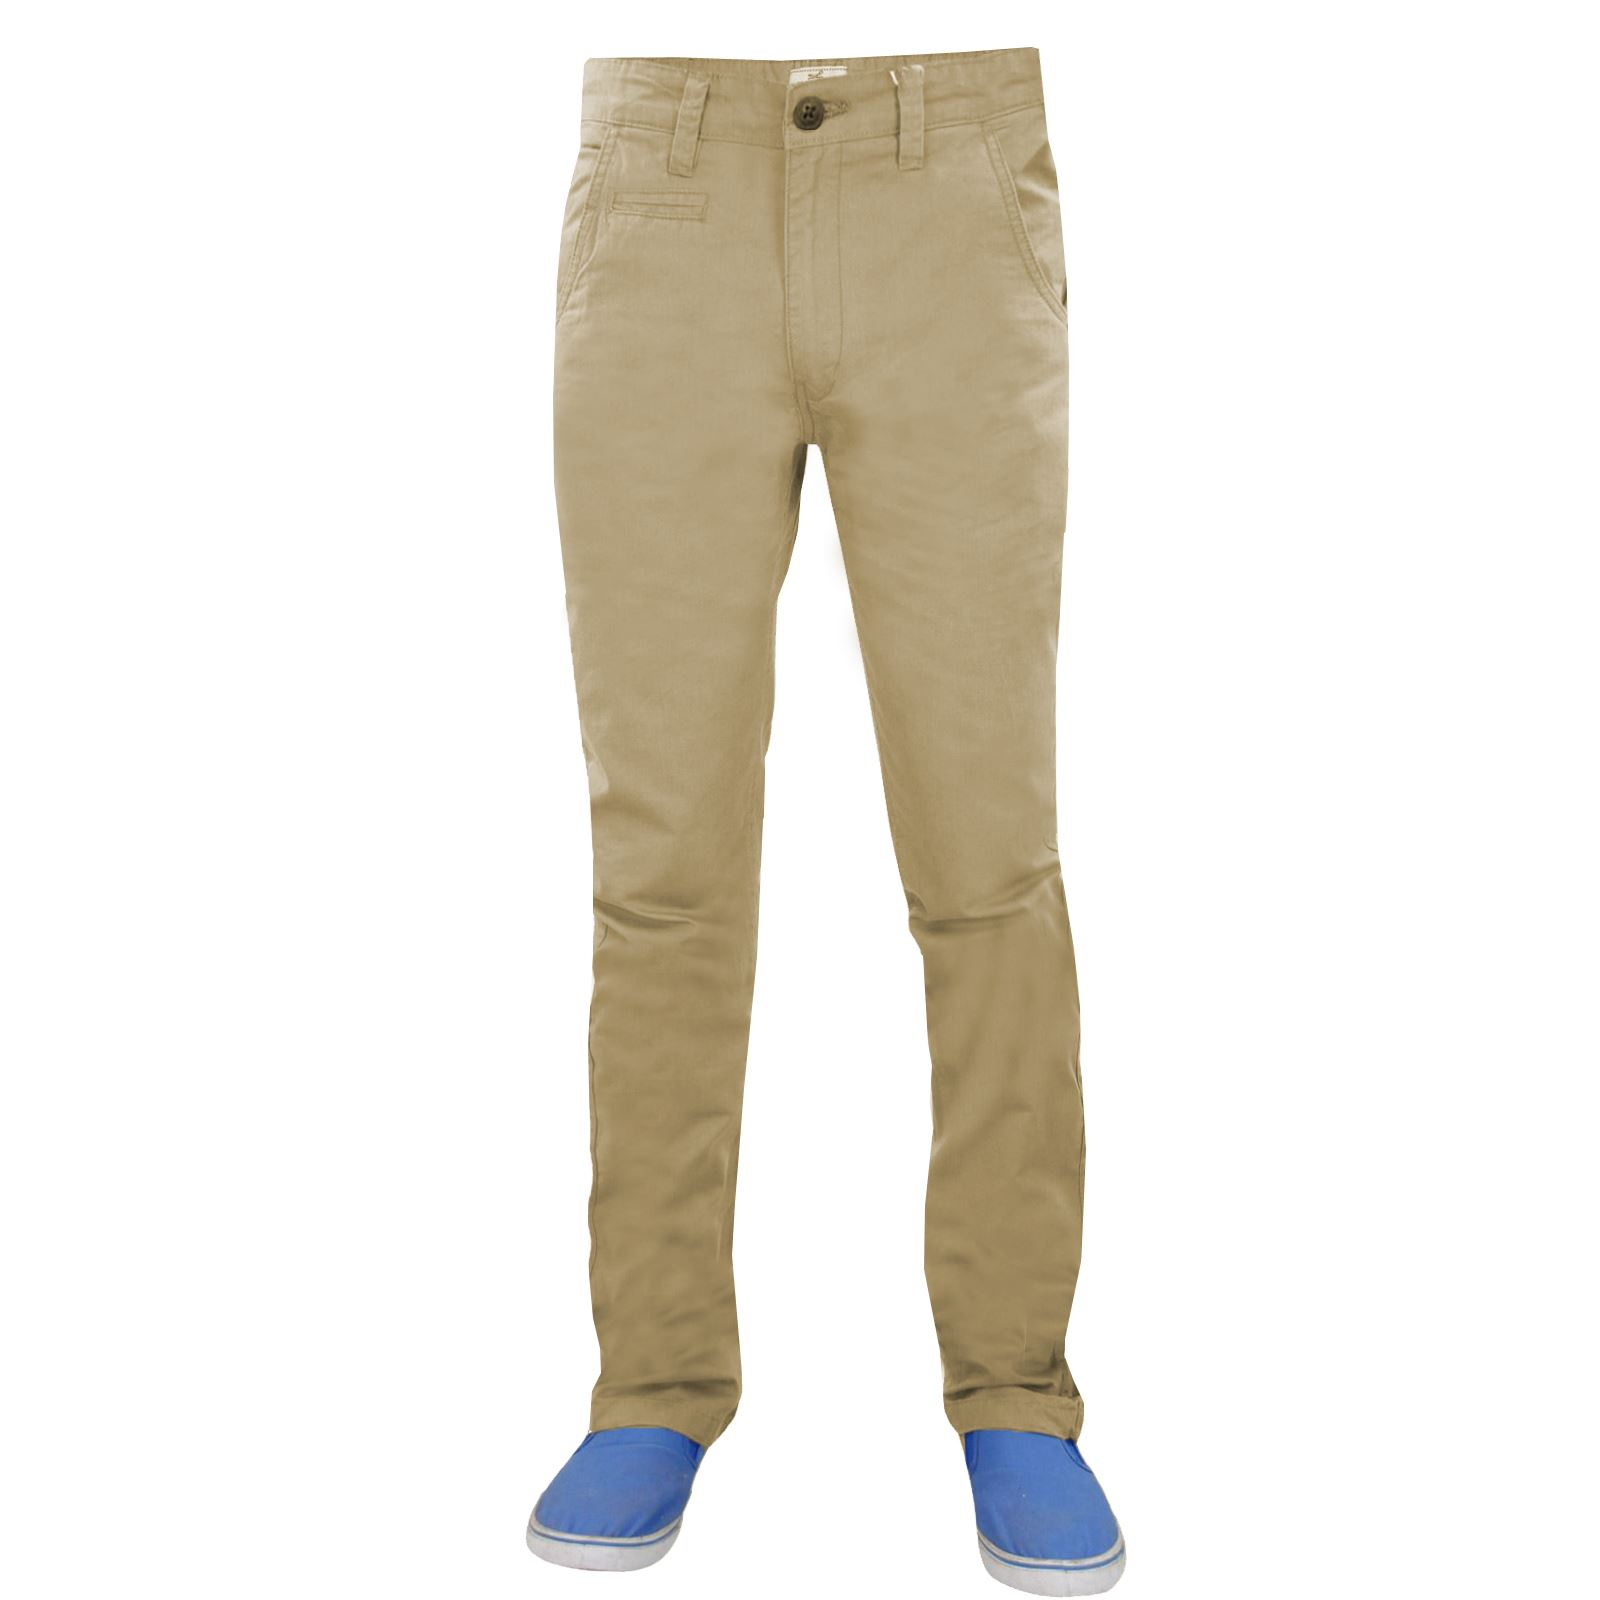 New Mens Designer Trousers Stretch Chino Skinny Slim Fit Jeans Pants ... a92db73f00